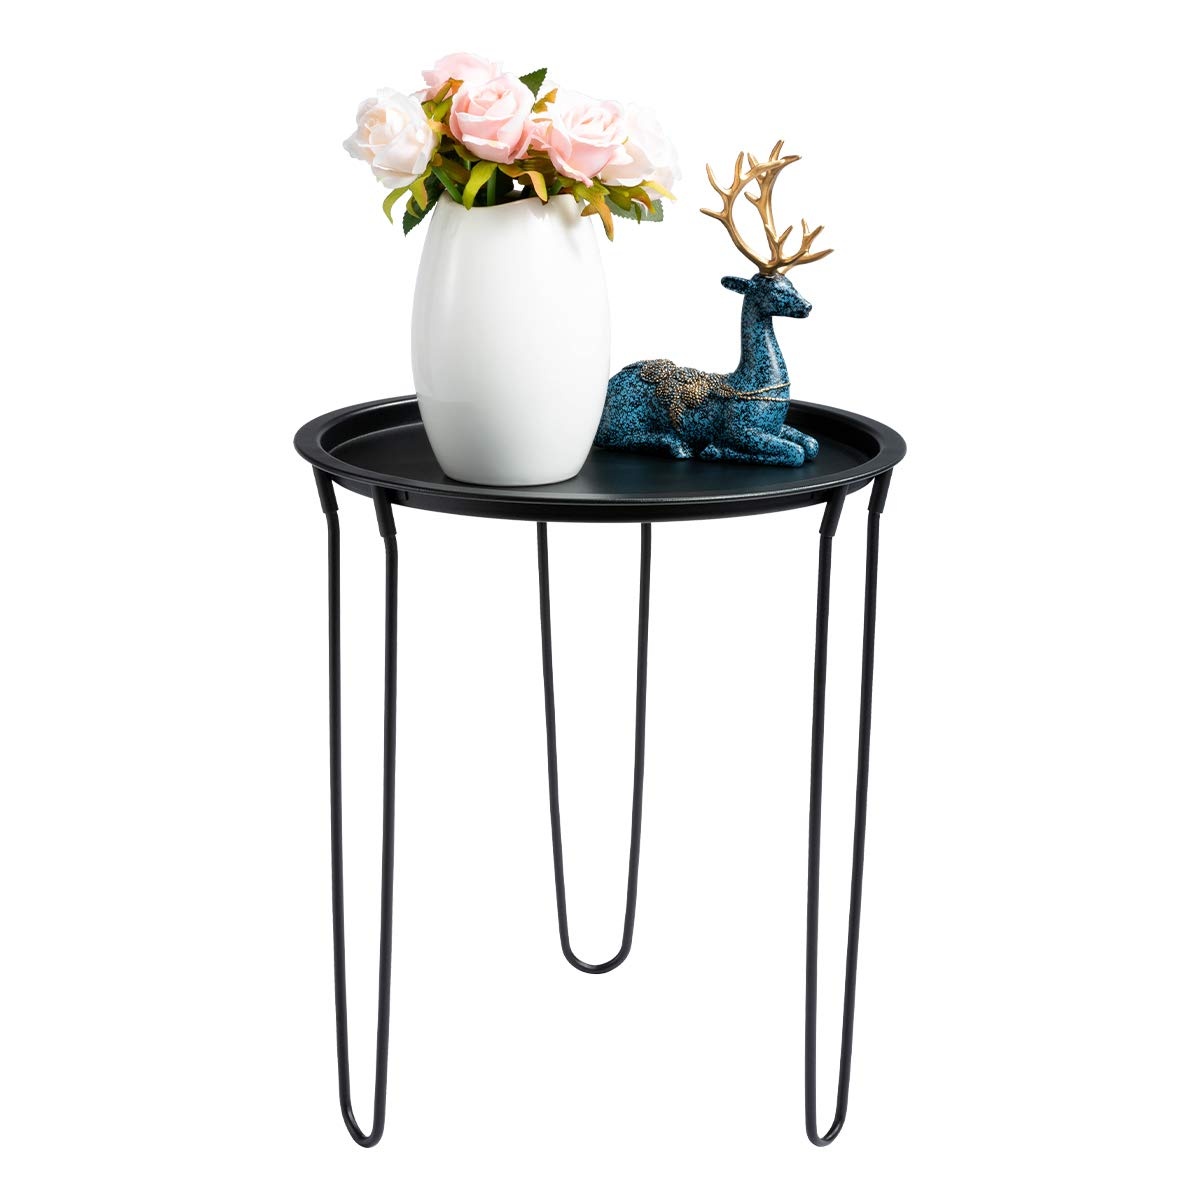 HollyHOME Small Round Metal Tray End Table, Sofa Table Accent Side Table, Anti-Rust and Outdoor Indoor Waterproof Snake and Coffee Table with Hairpin Legs, H 17.8 x D 15.55 , Black